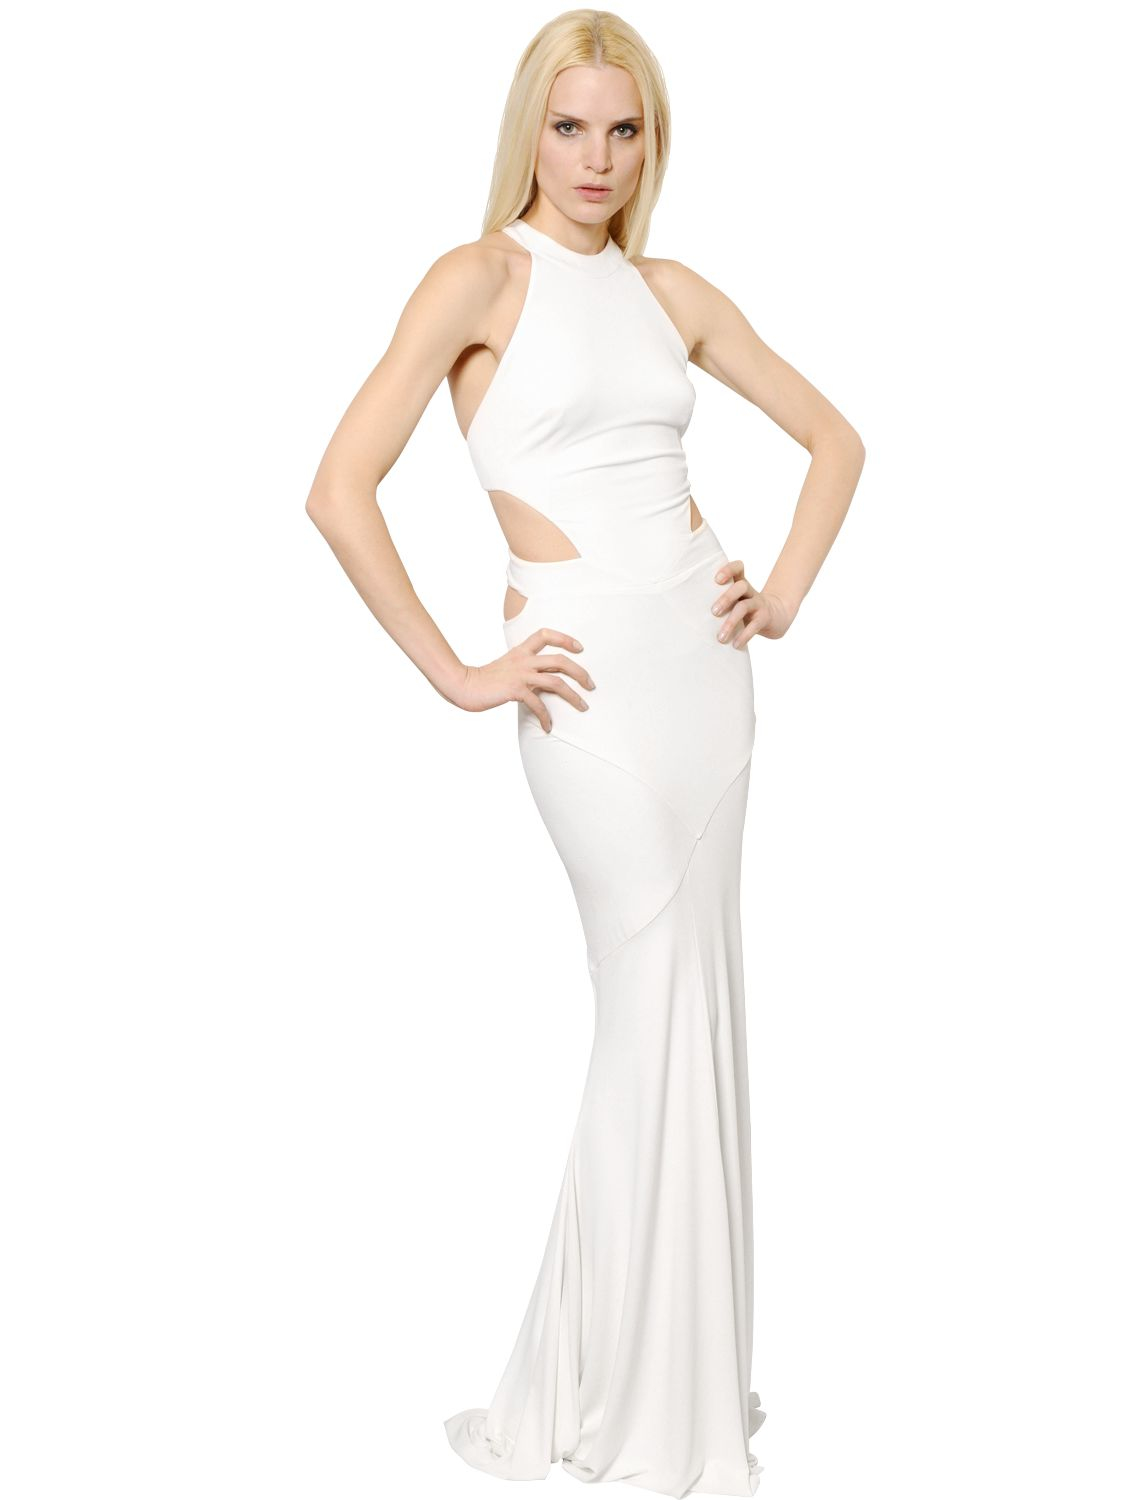 Lyst - Alexandre Vauthier Cutout Stretch Jersey Dress in White